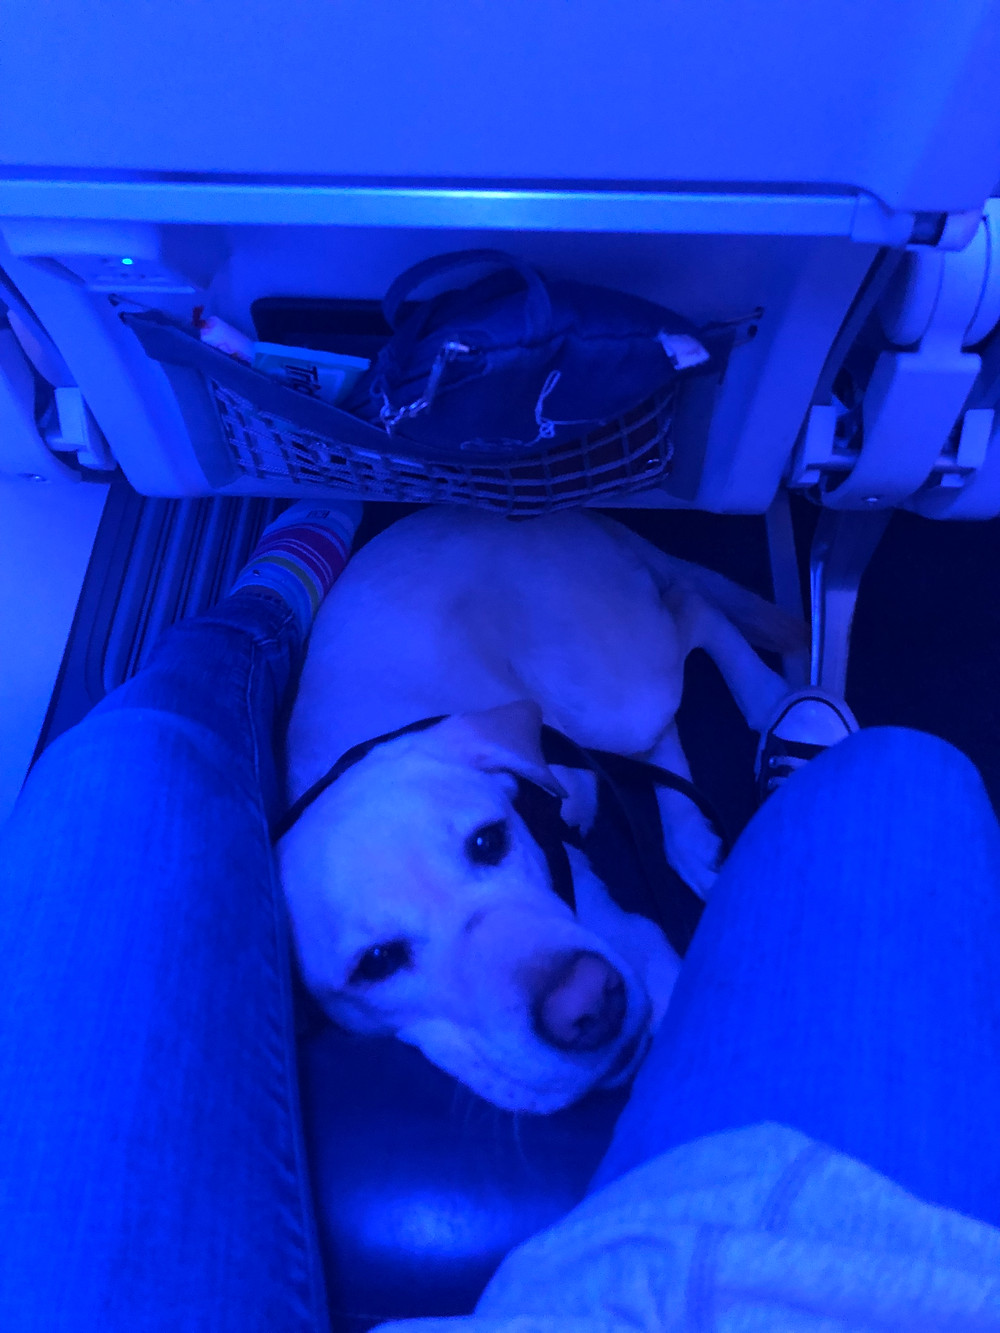 Ricki sitting at my feet on the plane. She's partially under the seat in front of me. The photo is cast blue from the lights on the plane.